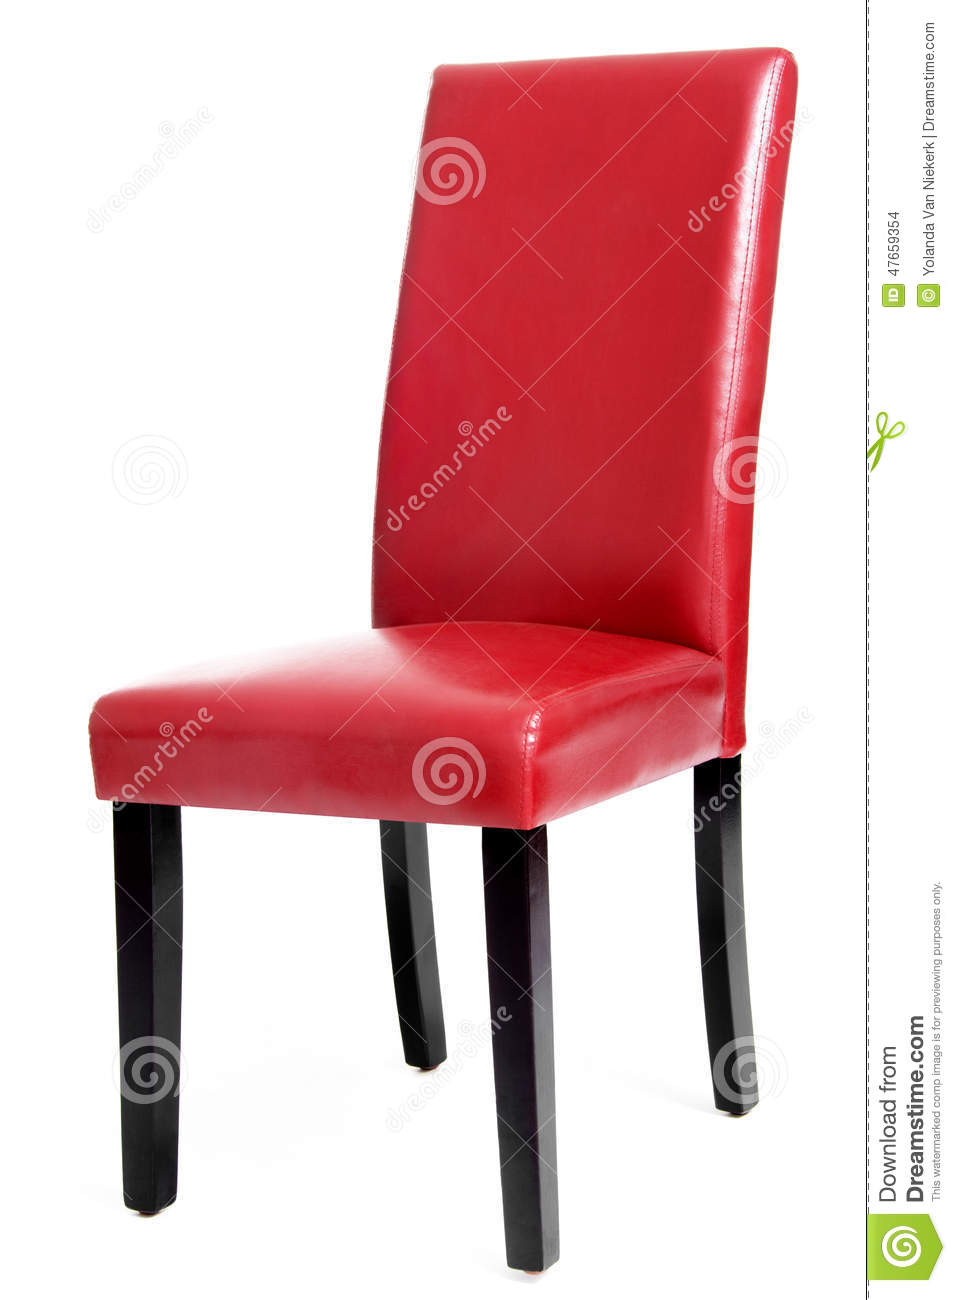 Red Leather Dining Room Chairs Red Leather Dining Chair With Wooden Legs Stock Photo Image Of